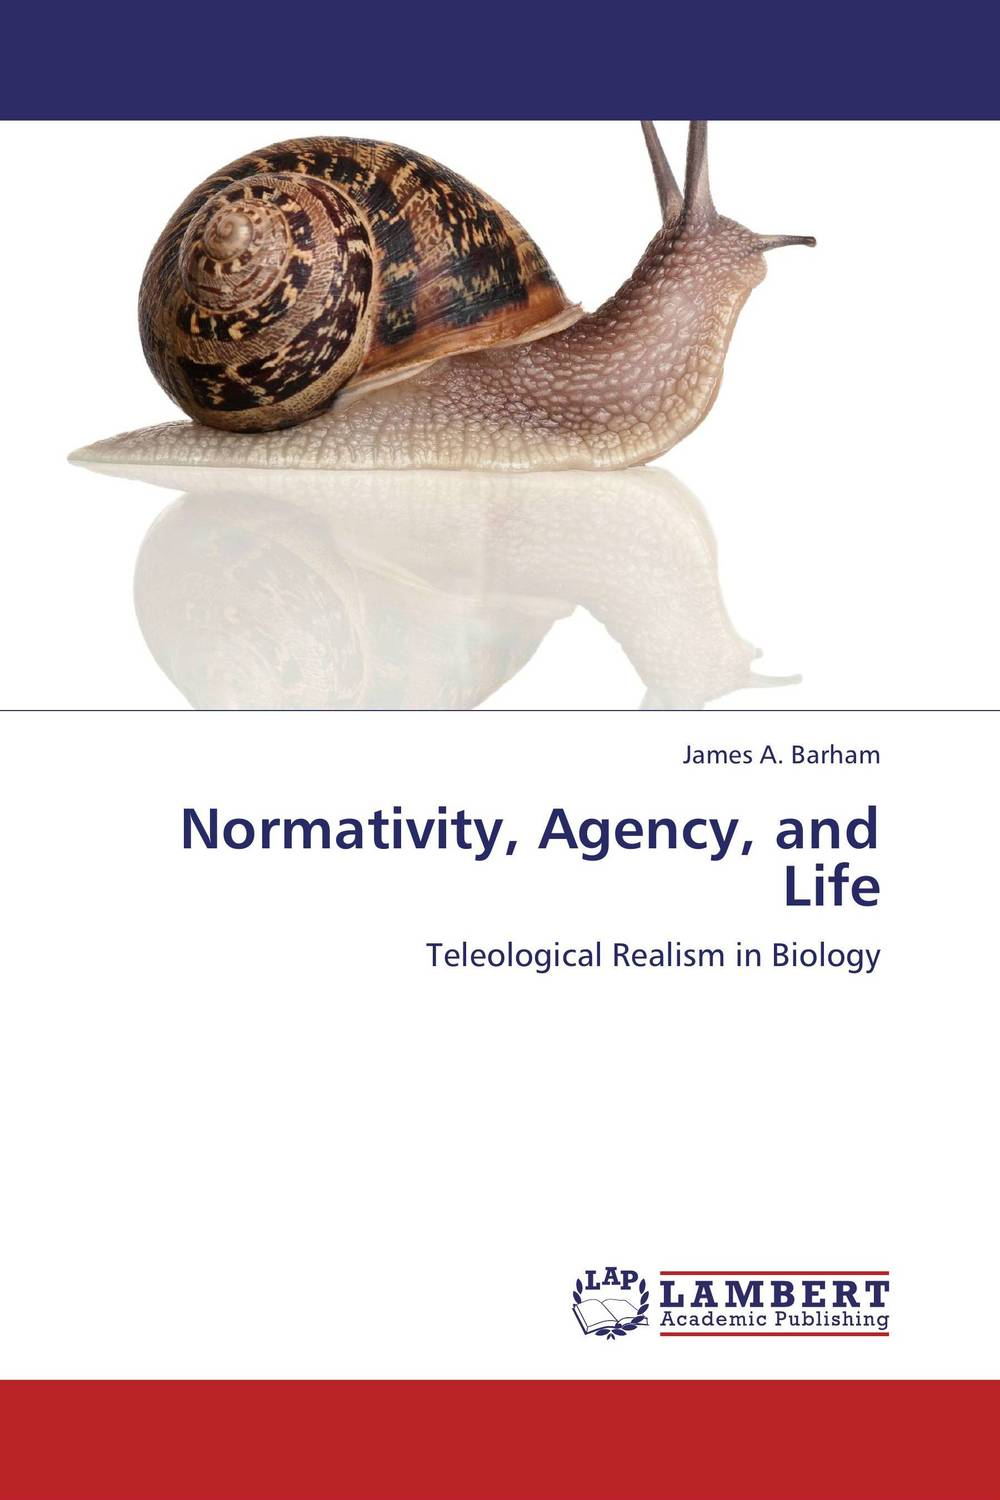 Normativity, Agency, and Life seeing things as they are